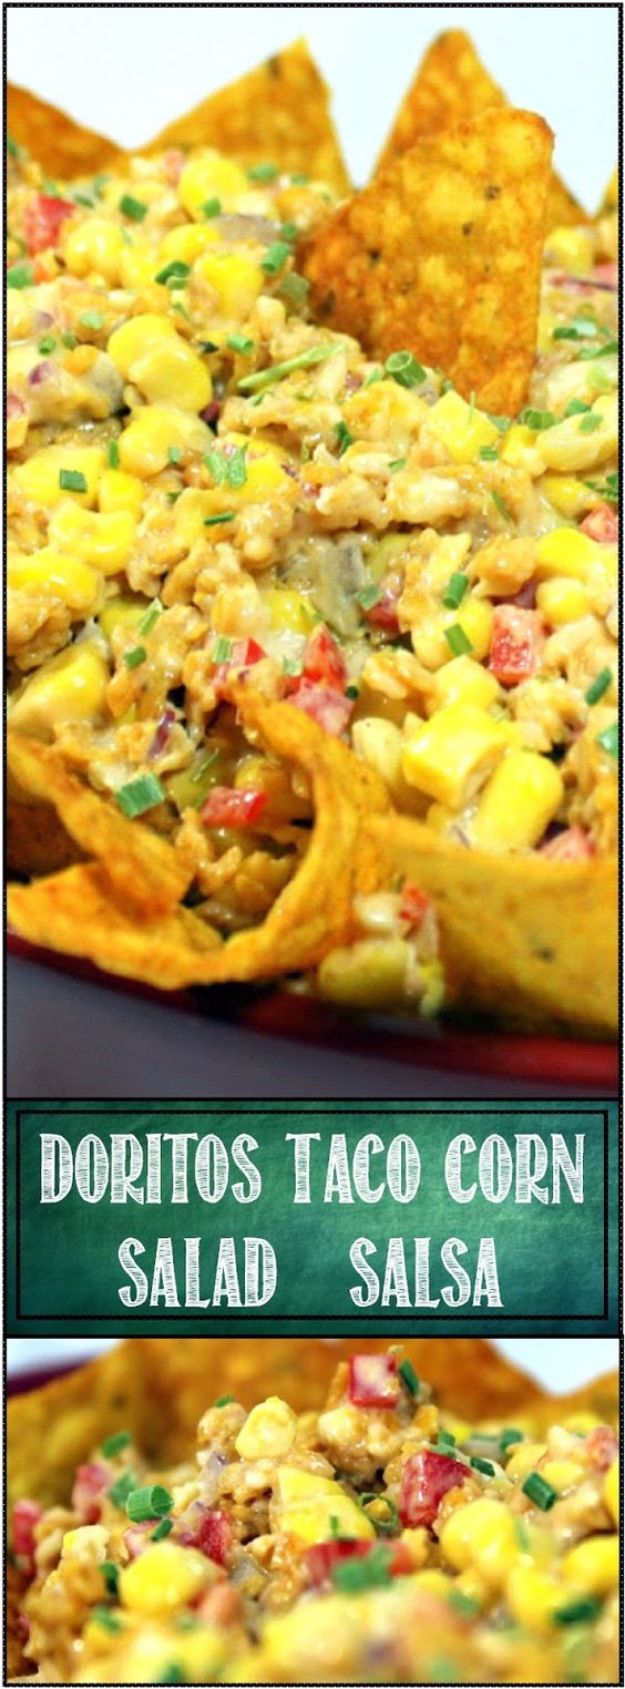 DIY Recipes Made With Doritos - Doritos Taco Corn Salsa Salad - Best Dorito Recipes for Casserole, Taco Salad, Chicken Dinners, Beef Casseroles, Nachos, Easy Cool Ranch Meals and Ideas for Dips, Snacks and Kids Recipe Tutorials - Quick Lunch Ideas and Recipes for Parties